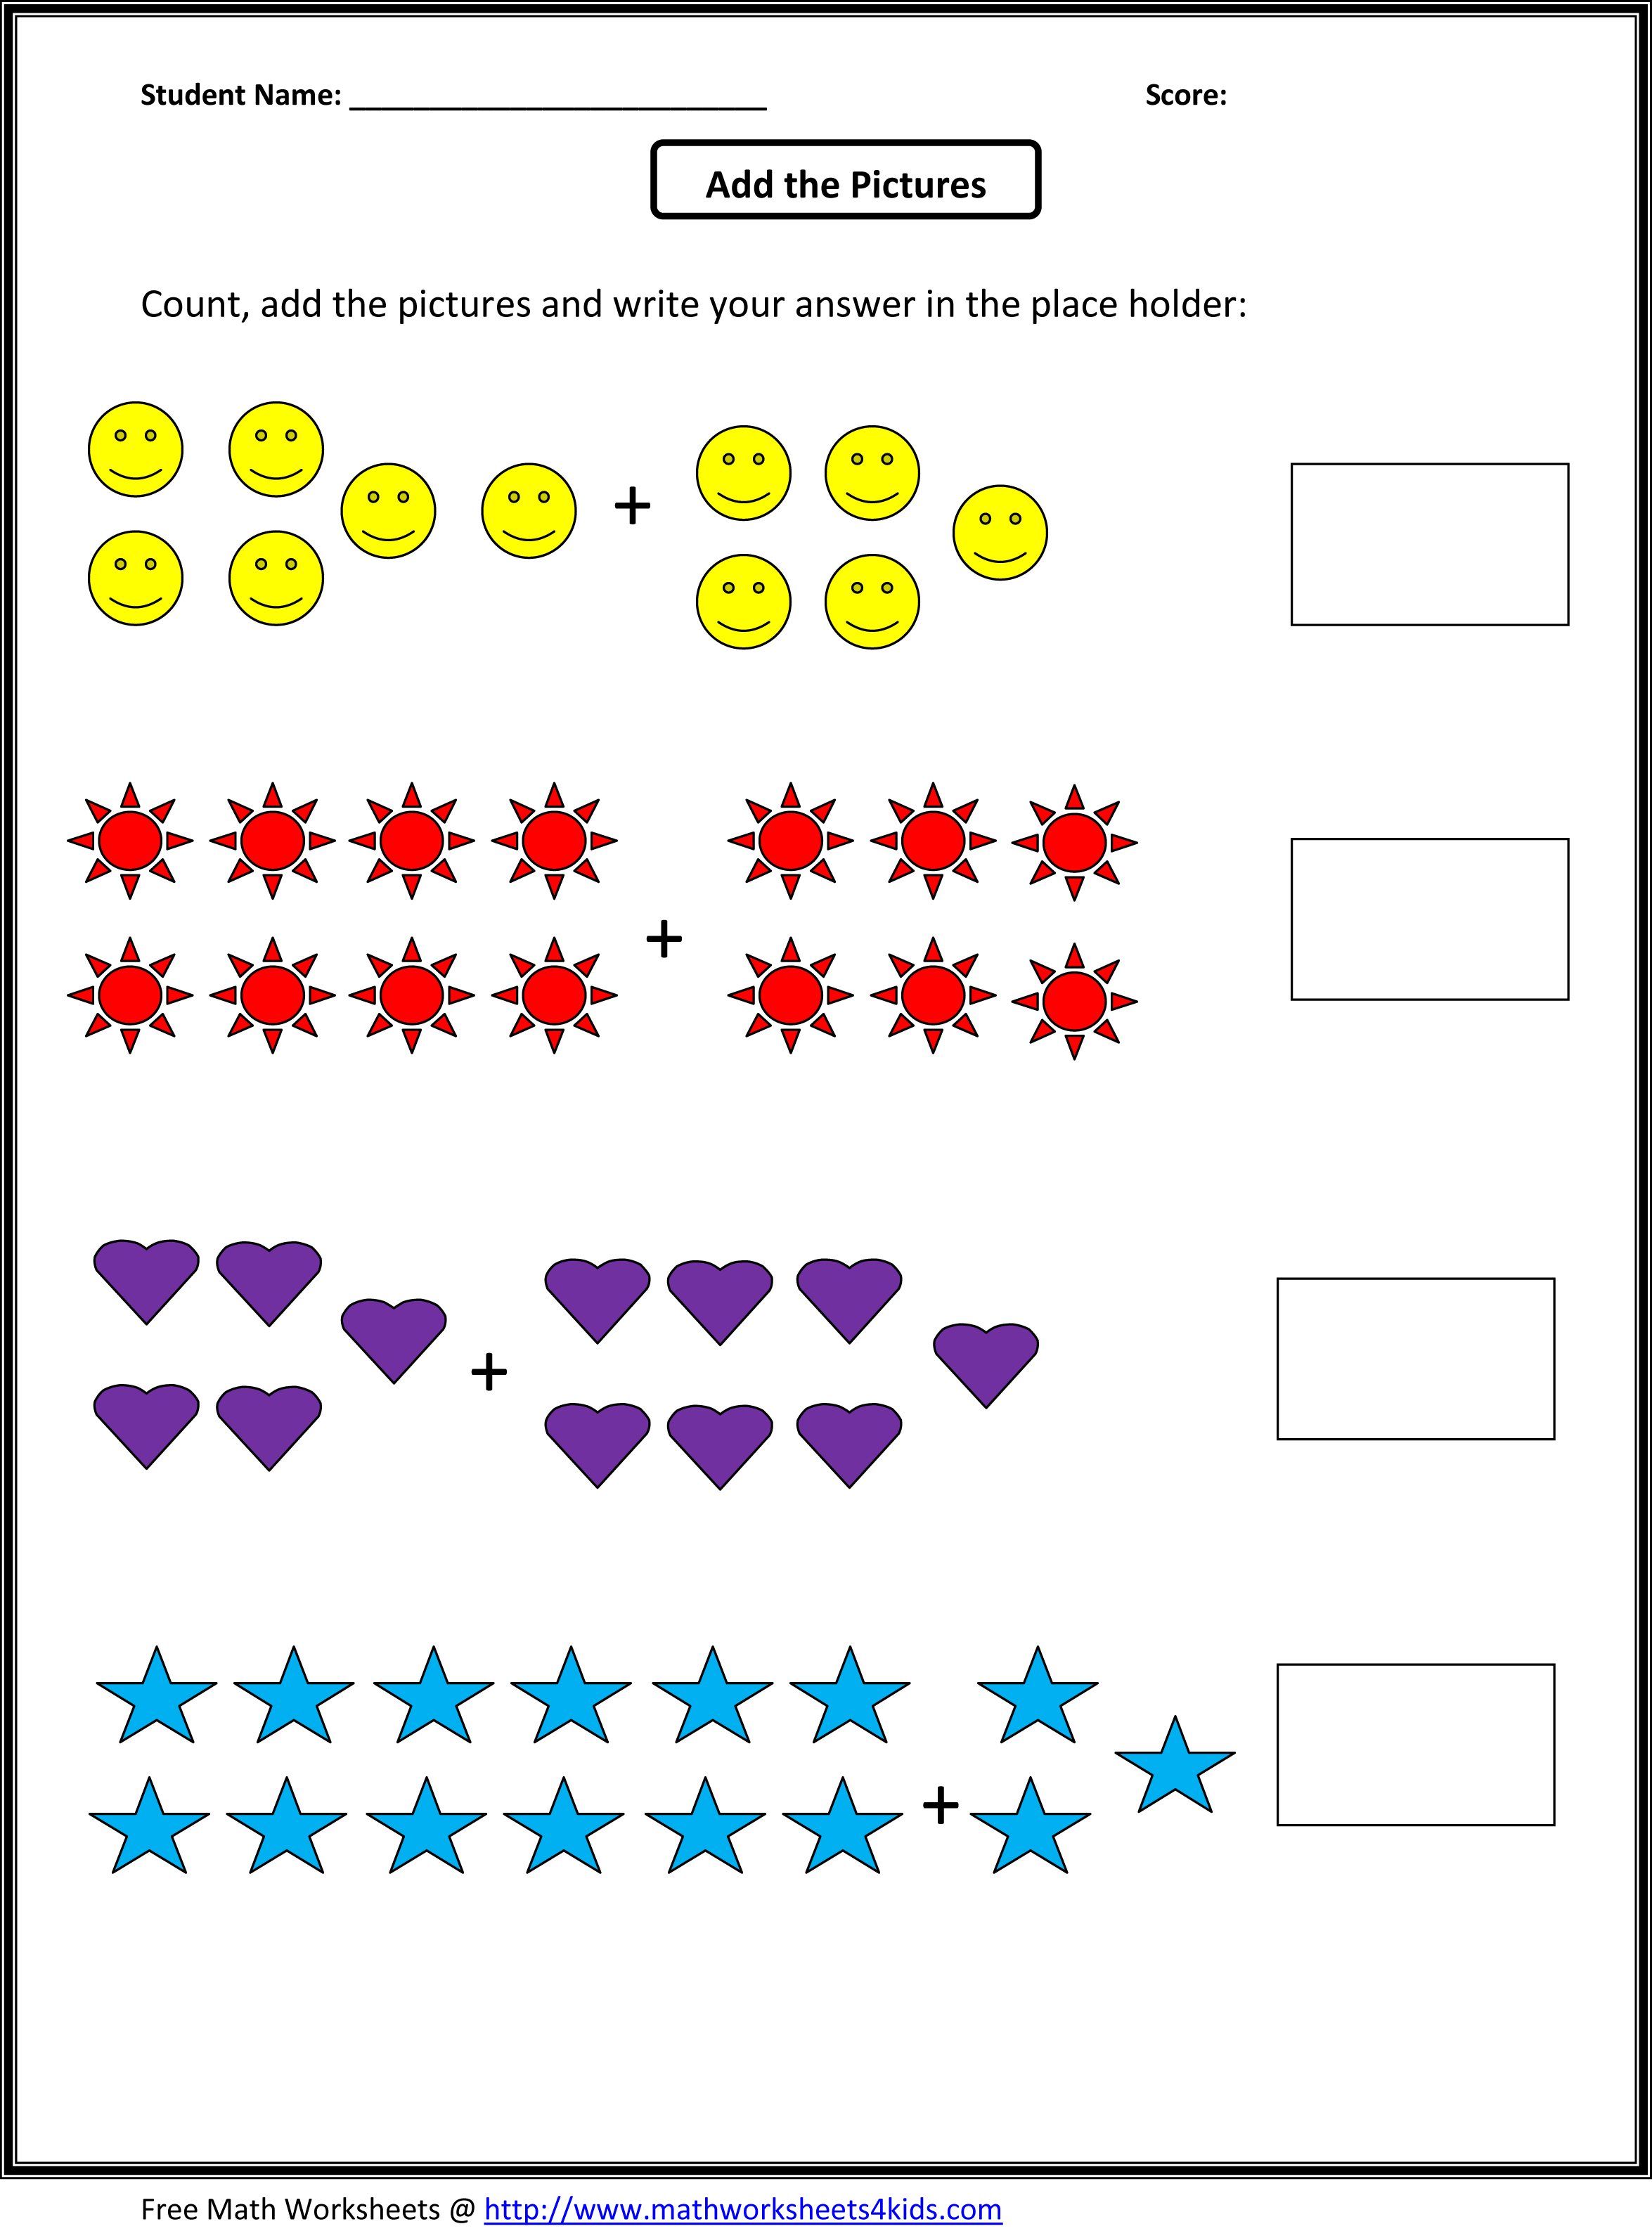 Proatmealus  Ravishing Grade  Maths Worksheet  Reocurent With Exciting Math Worksheets For St Grade Free  Reocurent With Cute Symmetry Worksheets For Grade  Also Proportion Worksheets Word Problems In Addition Word Definition Worksheets And Measuring Earthquakes Worksheet As Well As Worksheets For Grade  Math Additionally Music Worksheets For Preschoolers From Reocurentcom With Proatmealus  Exciting Grade  Maths Worksheet  Reocurent With Cute Math Worksheets For St Grade Free  Reocurent And Ravishing Symmetry Worksheets For Grade  Also Proportion Worksheets Word Problems In Addition Word Definition Worksheets From Reocurentcom